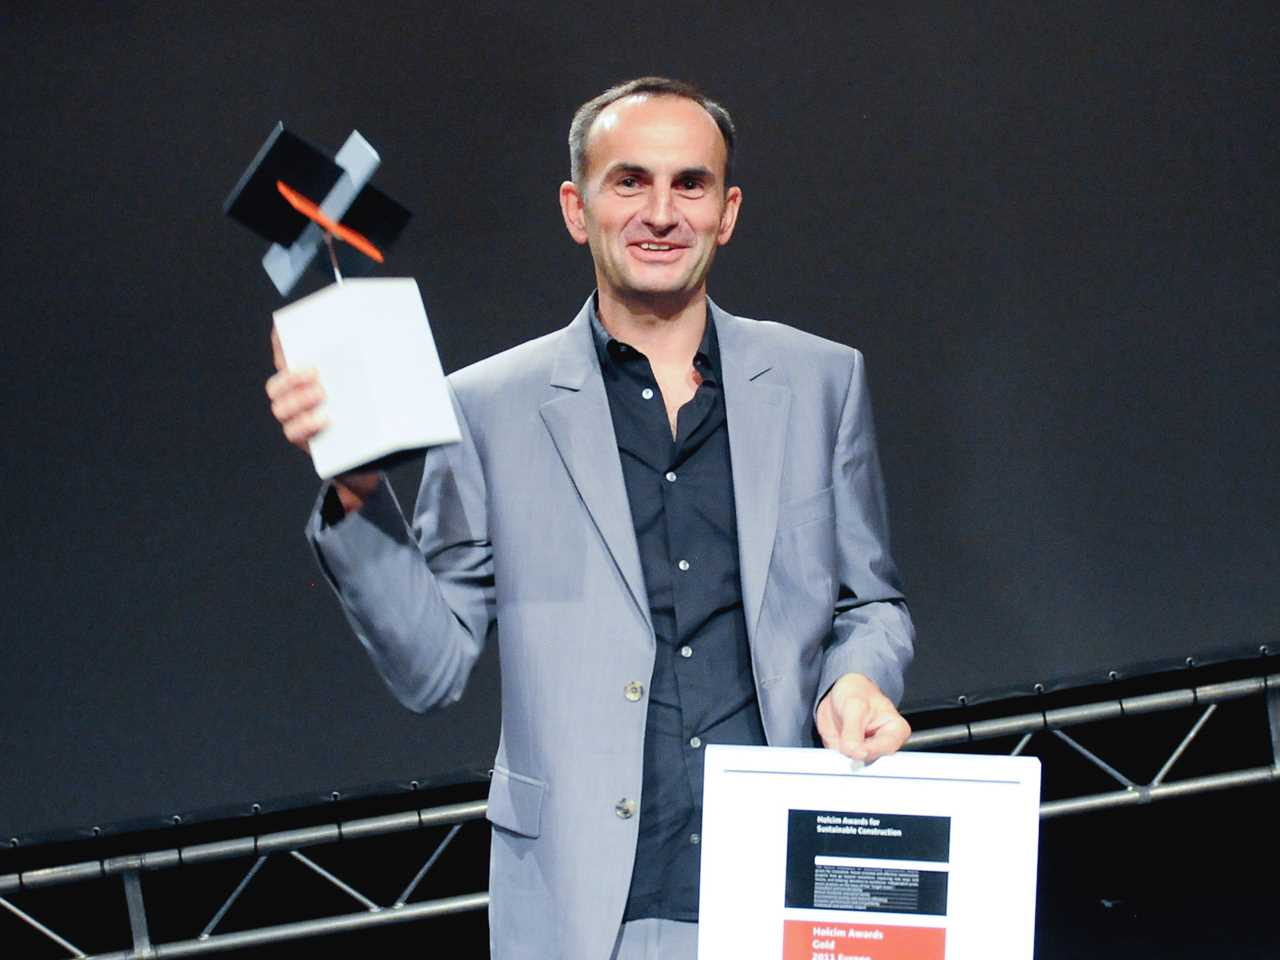 Holcim Awards ceremony for Europe 2011 – Milan, Italy